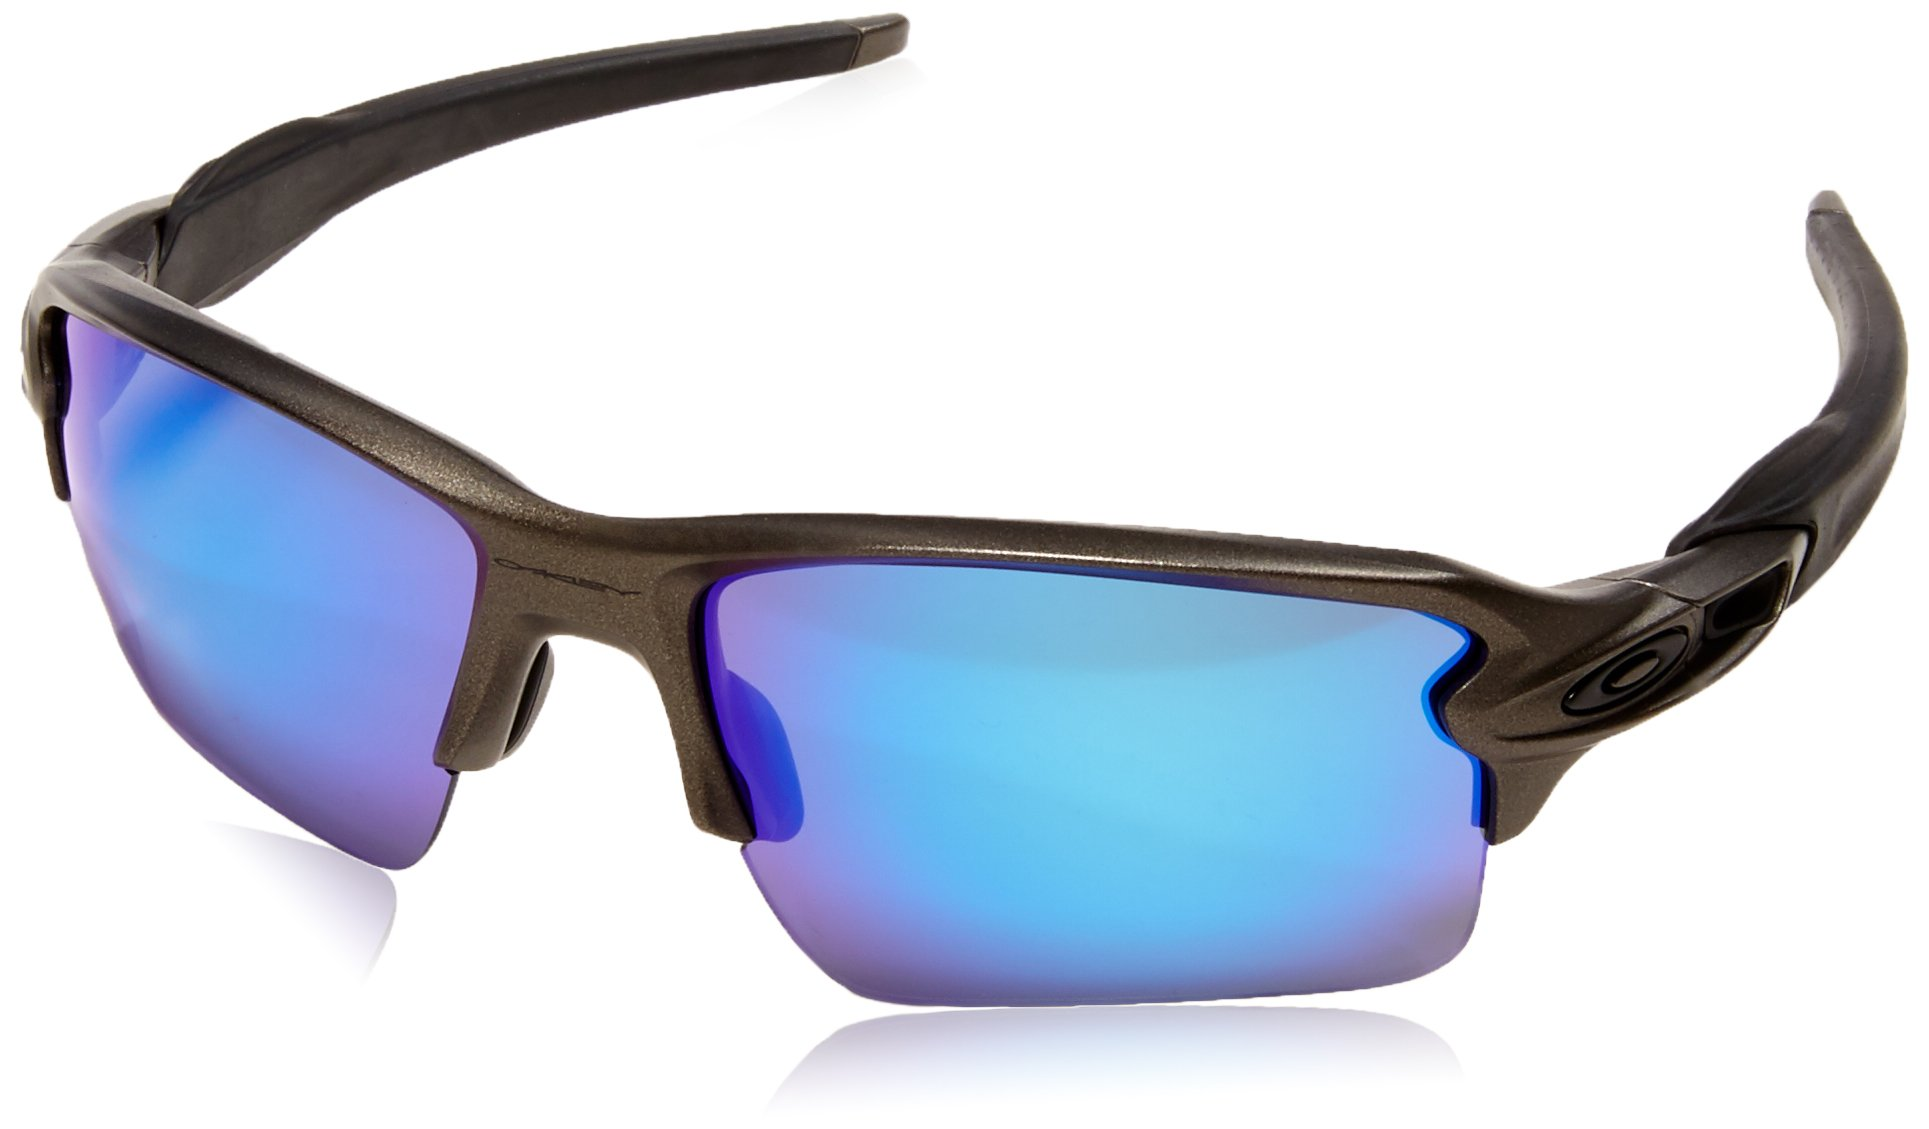 Oakley Men's Flak 2.0 XL Non-Polarized Rectangular Sunglasses Lead w/Sapphire Iridium 59 mm